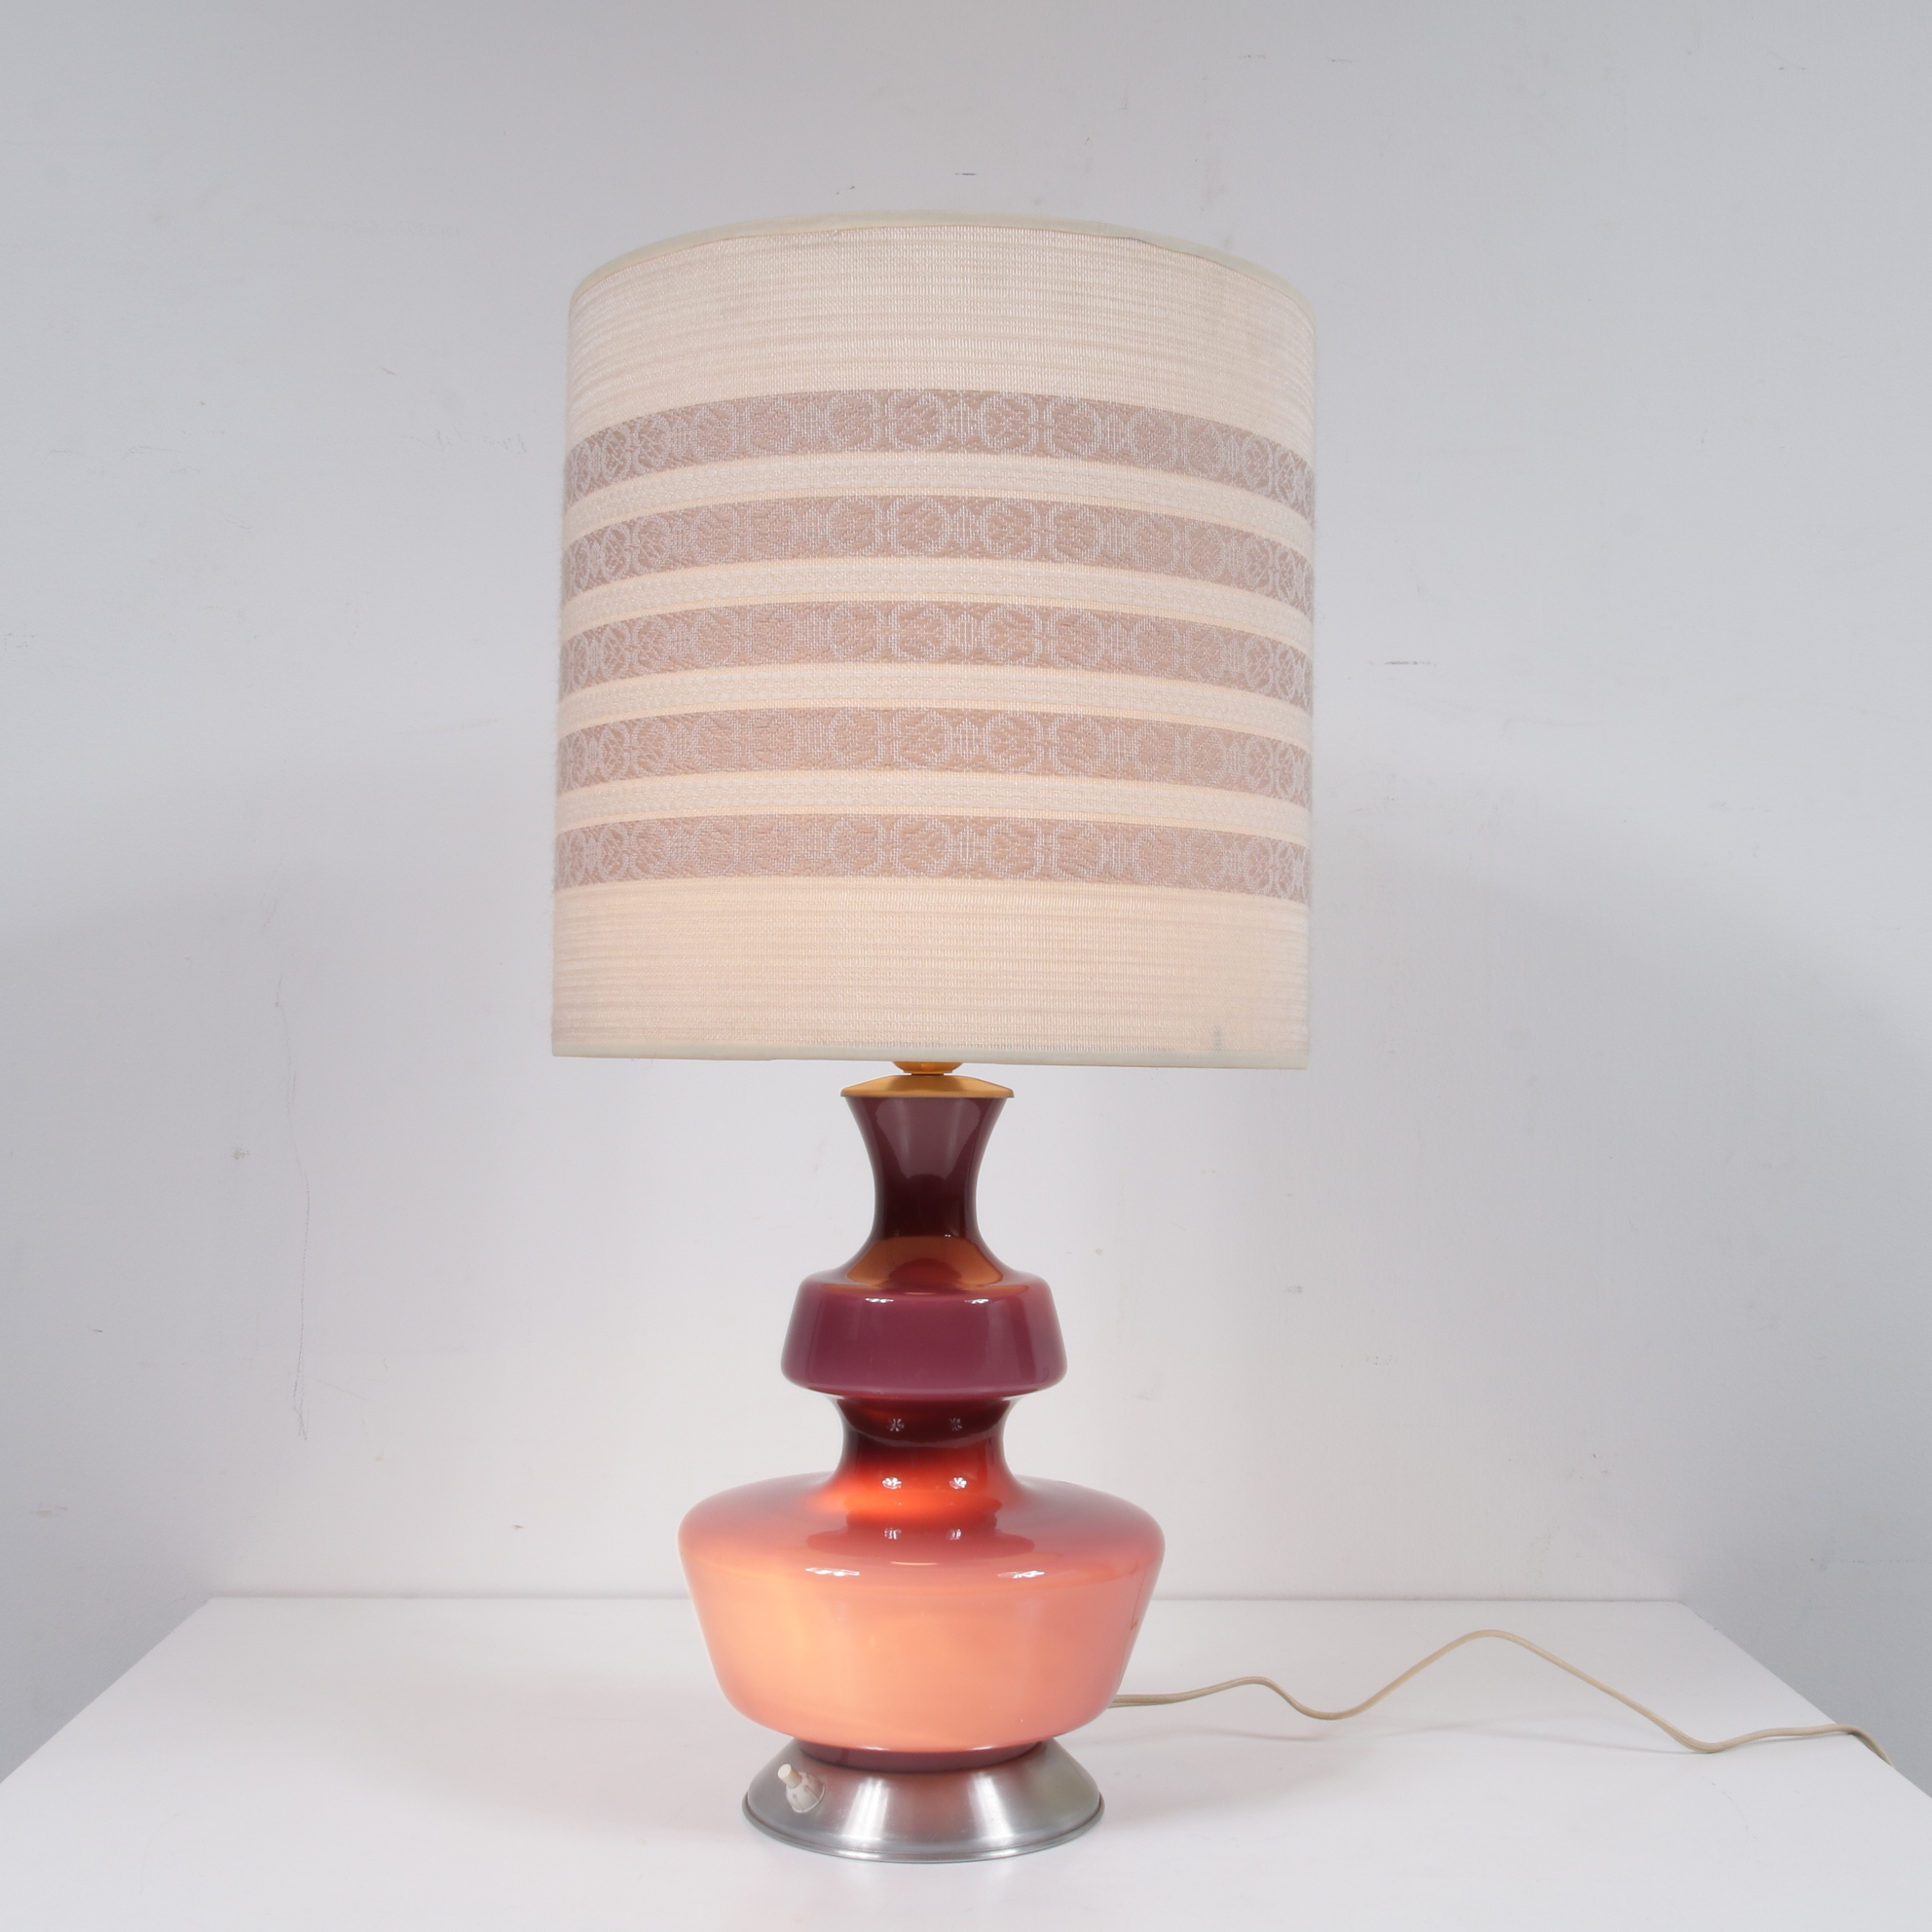 L4231 1960s Danish glass table lamp with original fabric hood Holmgaard / Denmark